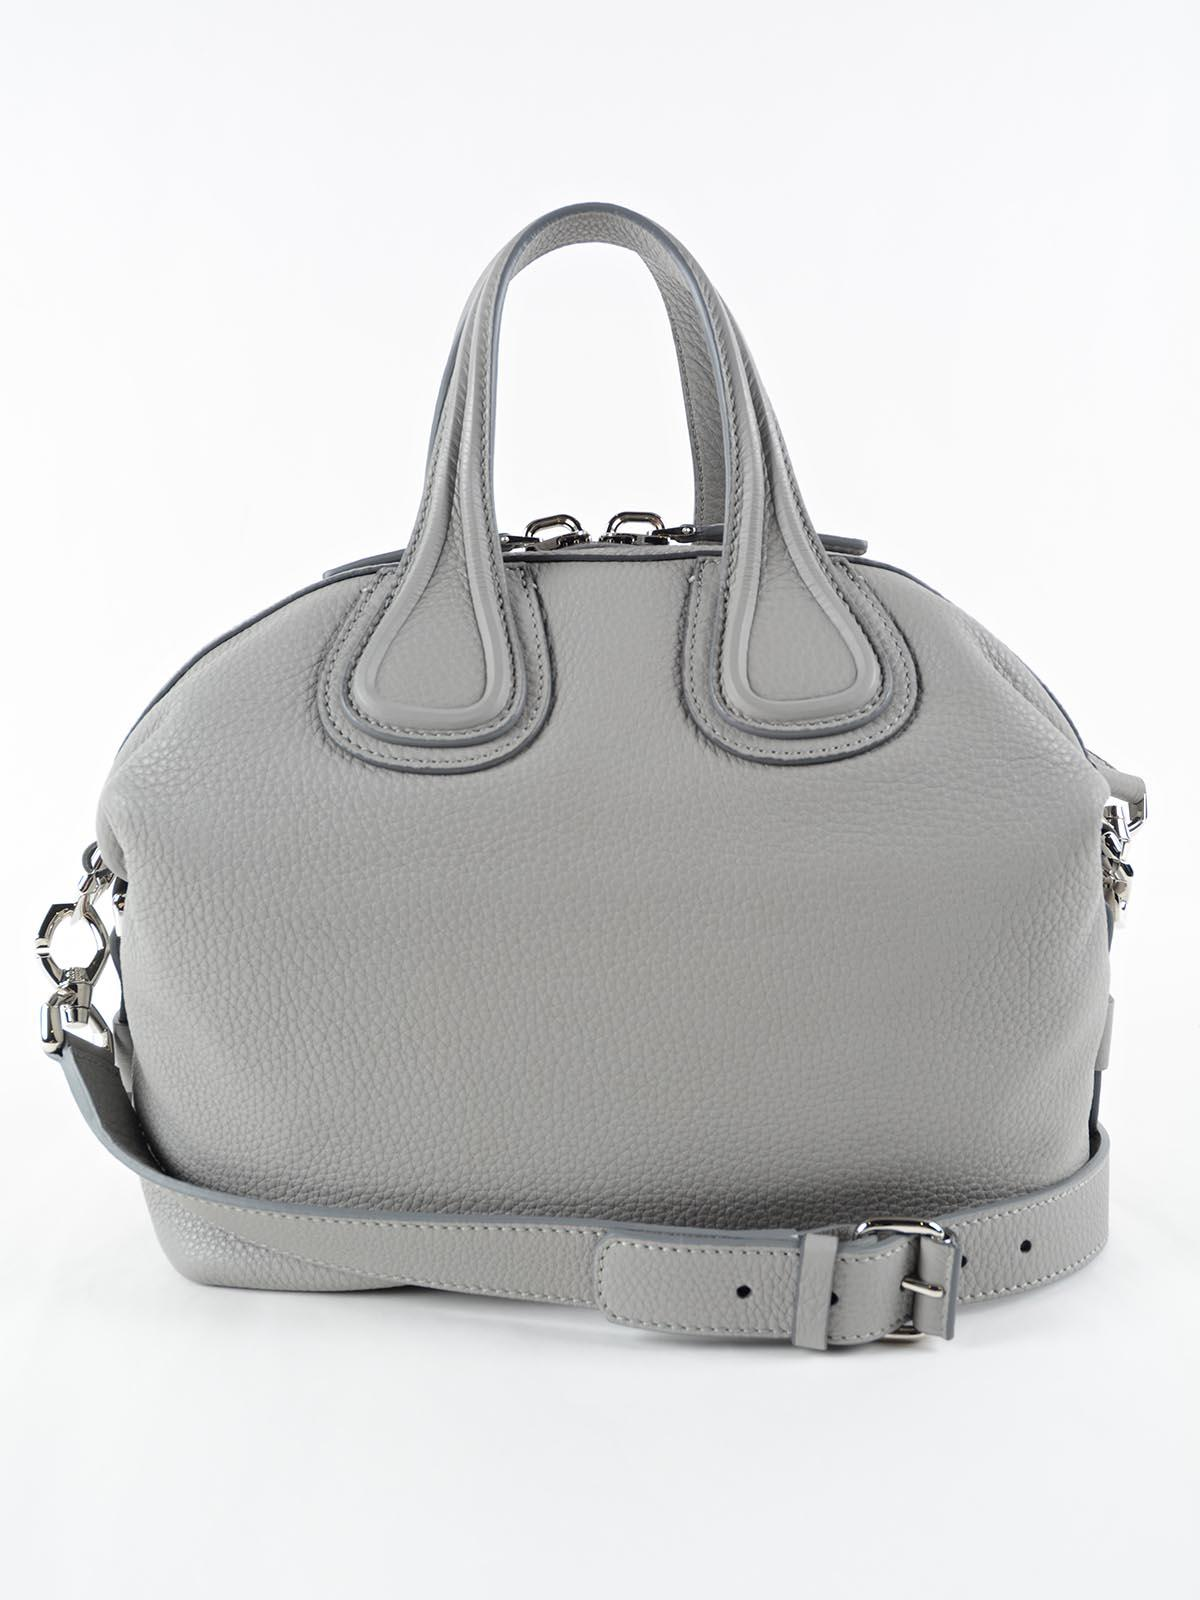 0b15c731d9 Givenchy Nightingale Small Grey Leather Tote in Gray - Lyst